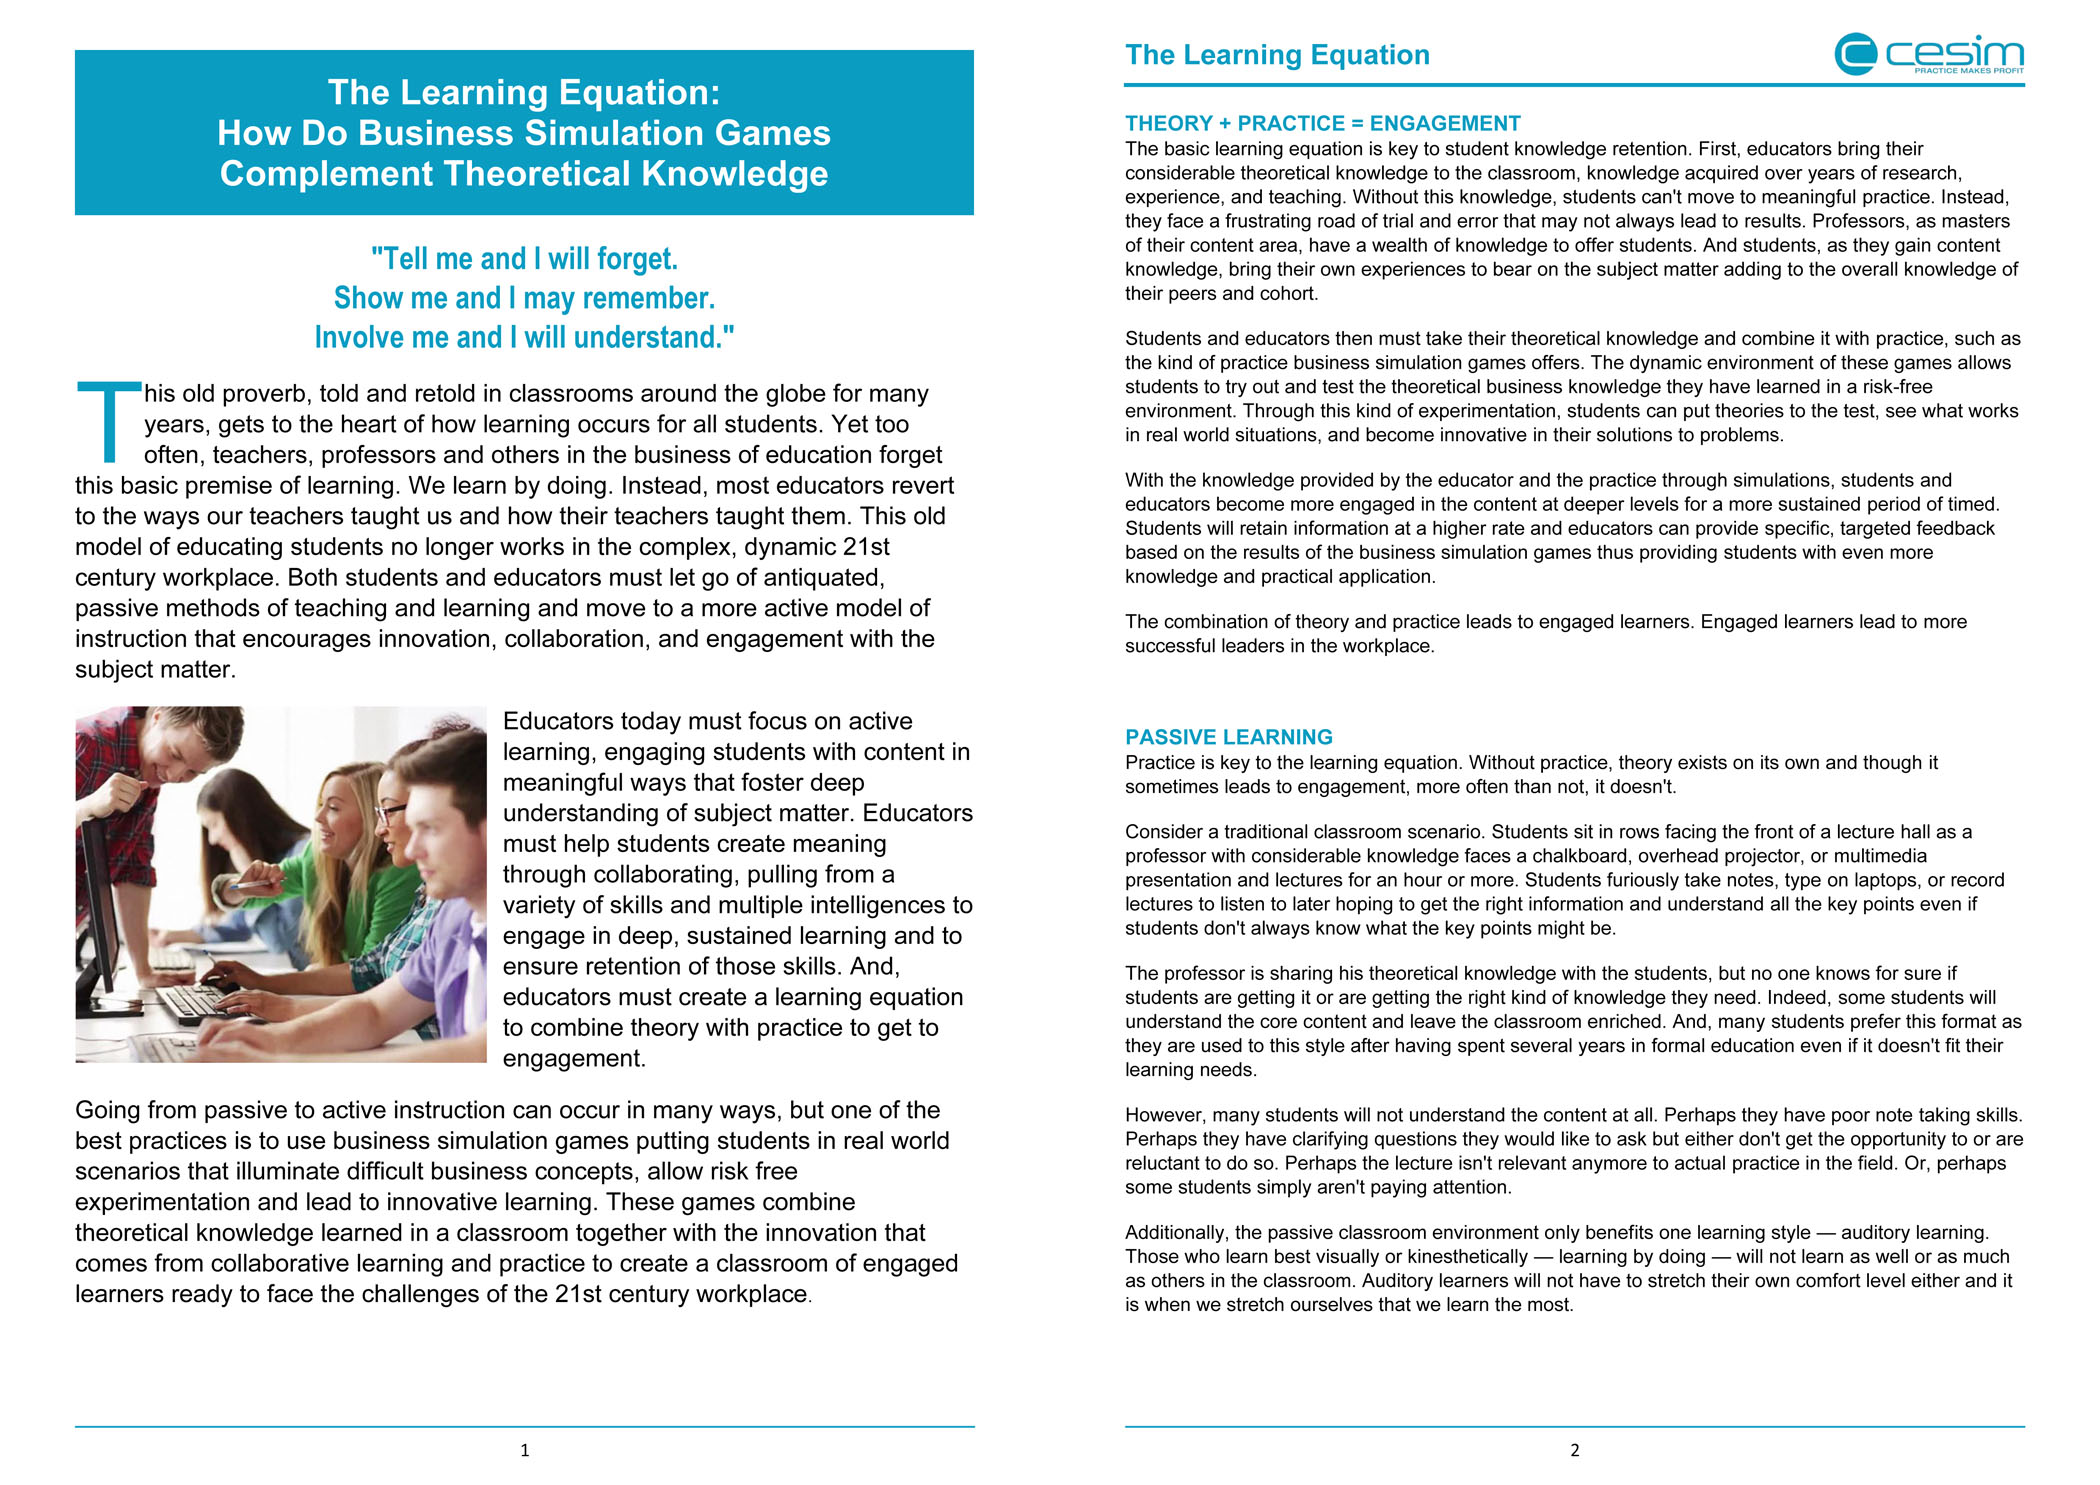 The Learning Equation white paper